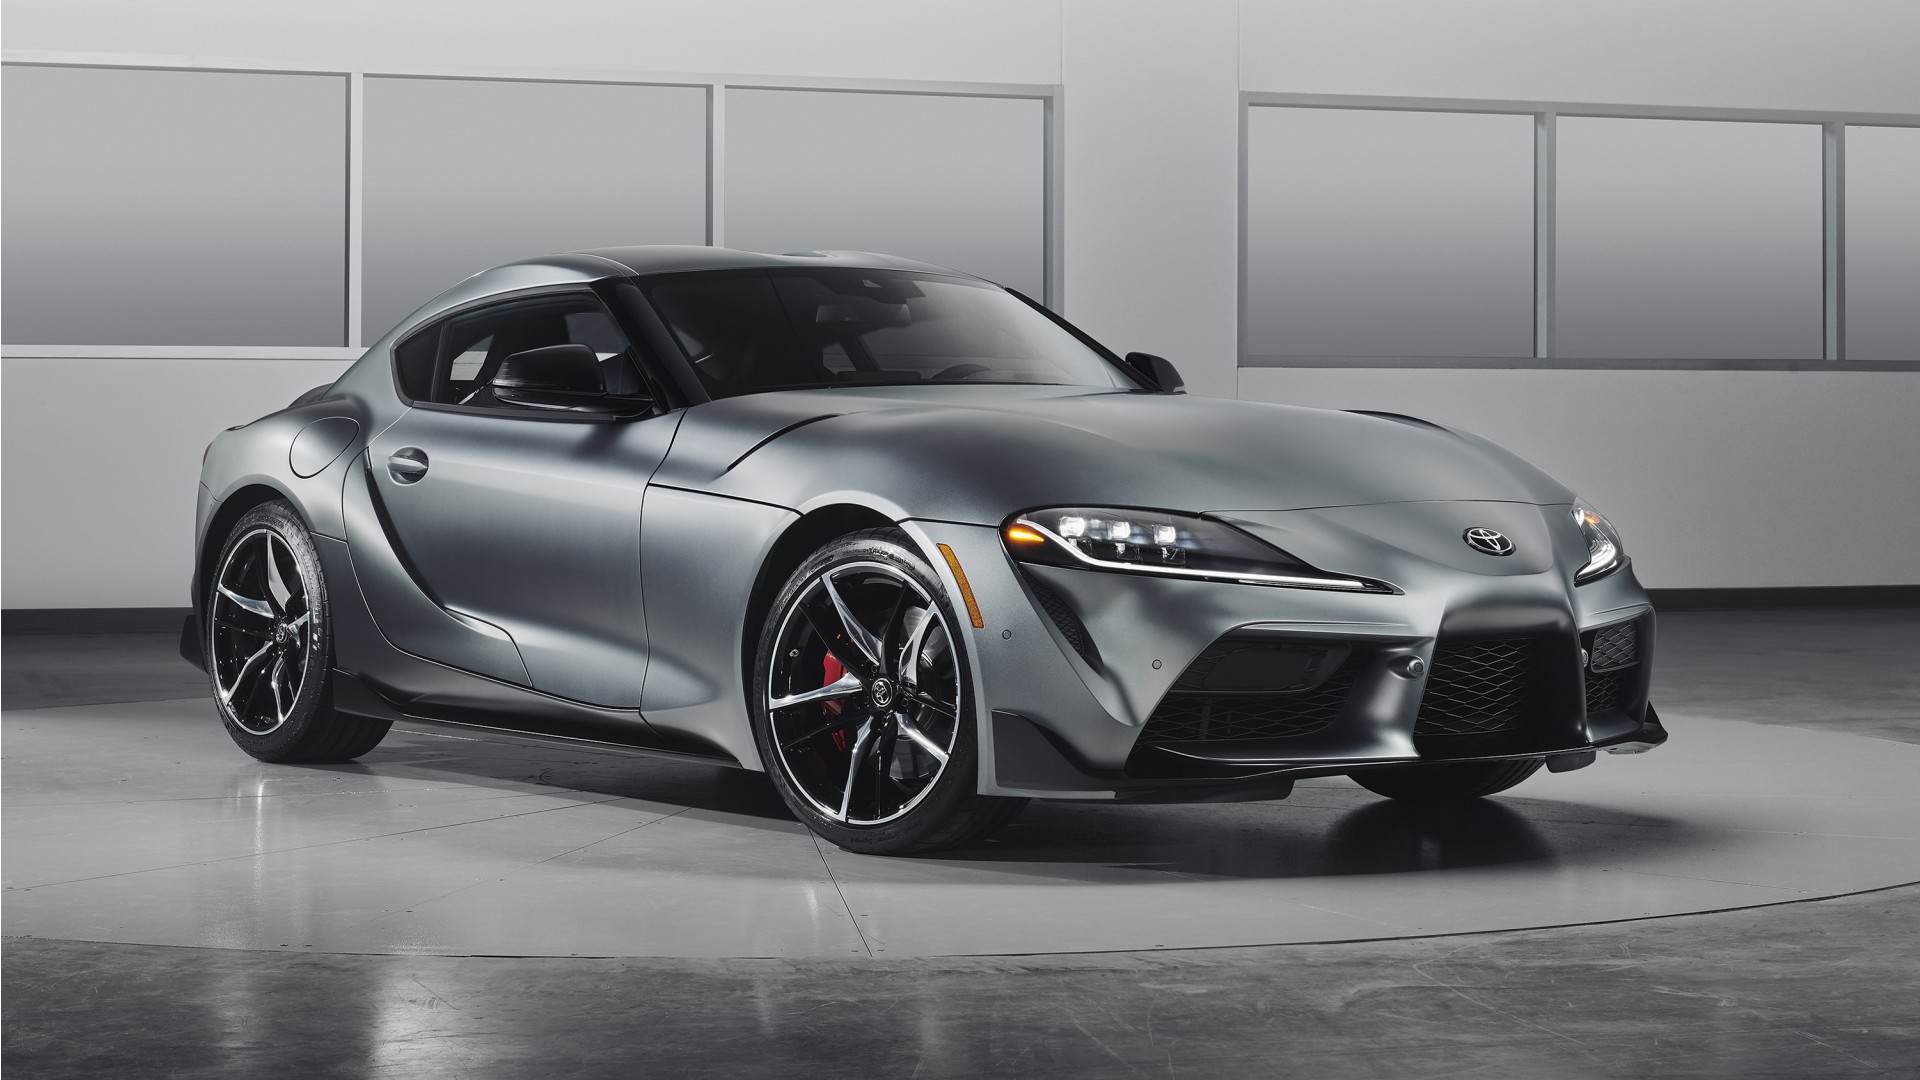 2020 Toyota Gr Supra Wallpaper Hd Car Wallpapers Id 11859